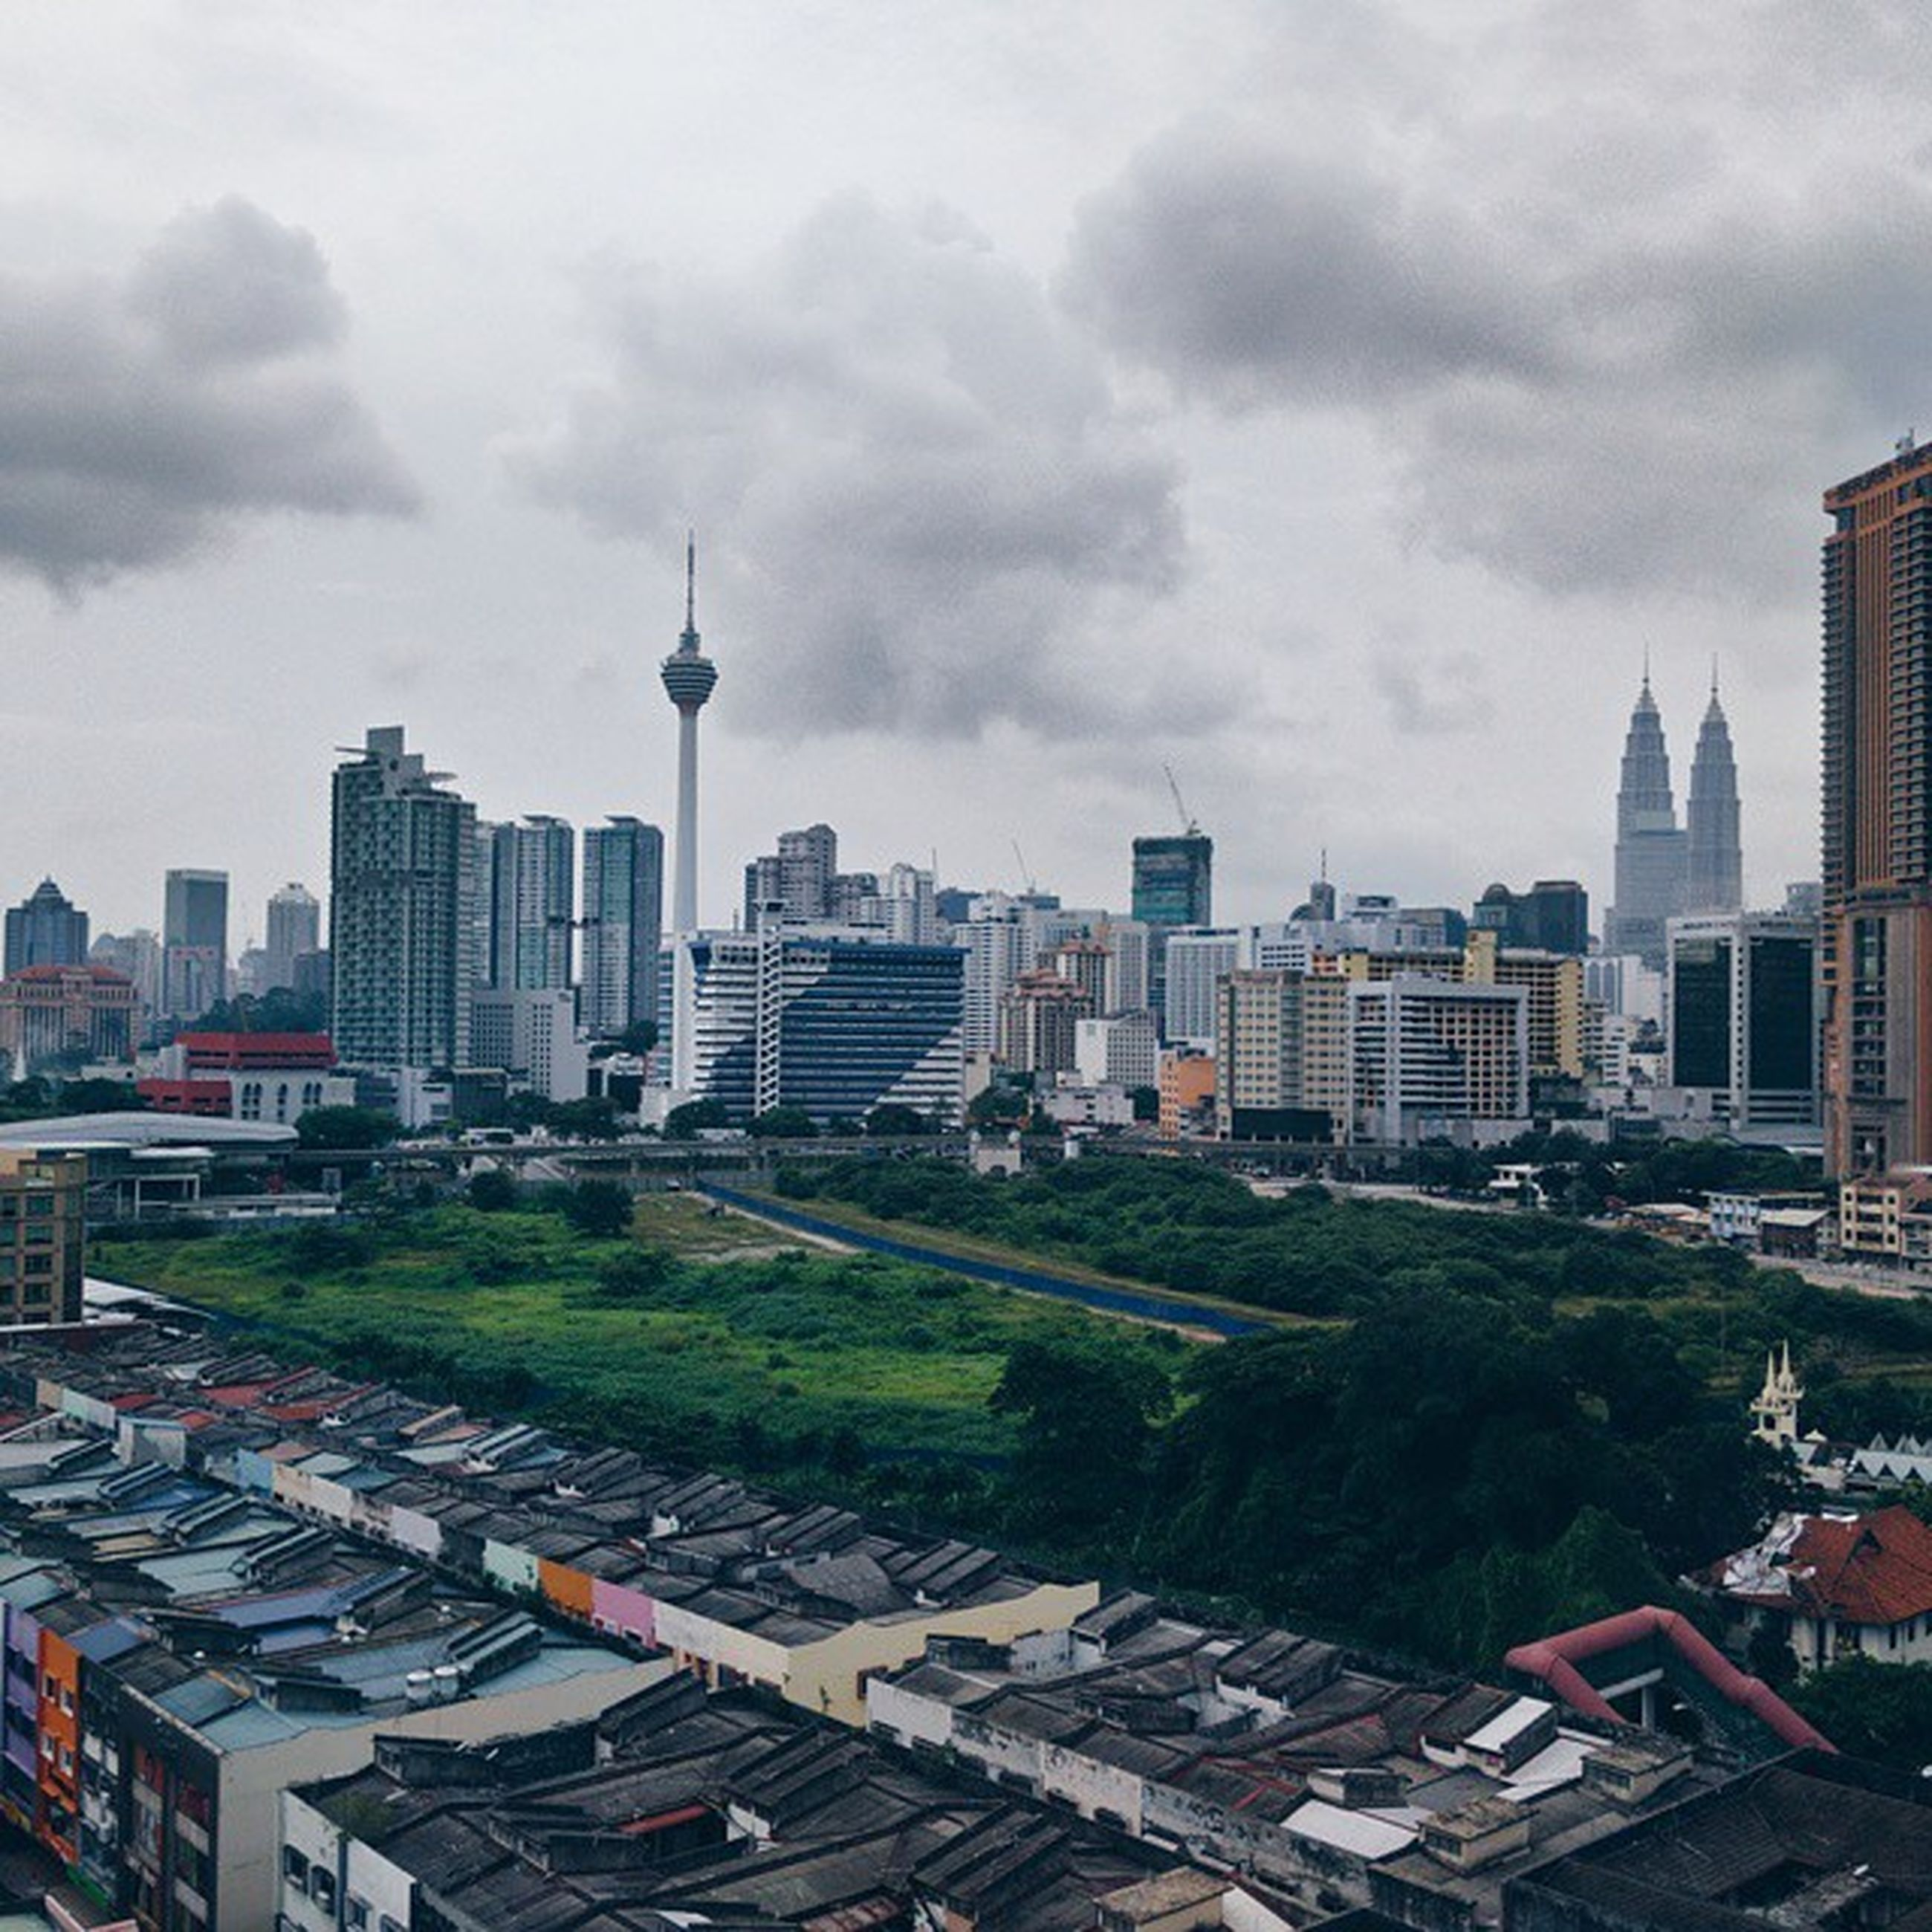 building exterior, architecture, built structure, city, sky, tower, cityscape, tall - high, cloud - sky, skyscraper, cloudy, capital cities, travel destinations, communications tower, city life, urban skyline, residential district, high angle view, office building, modern